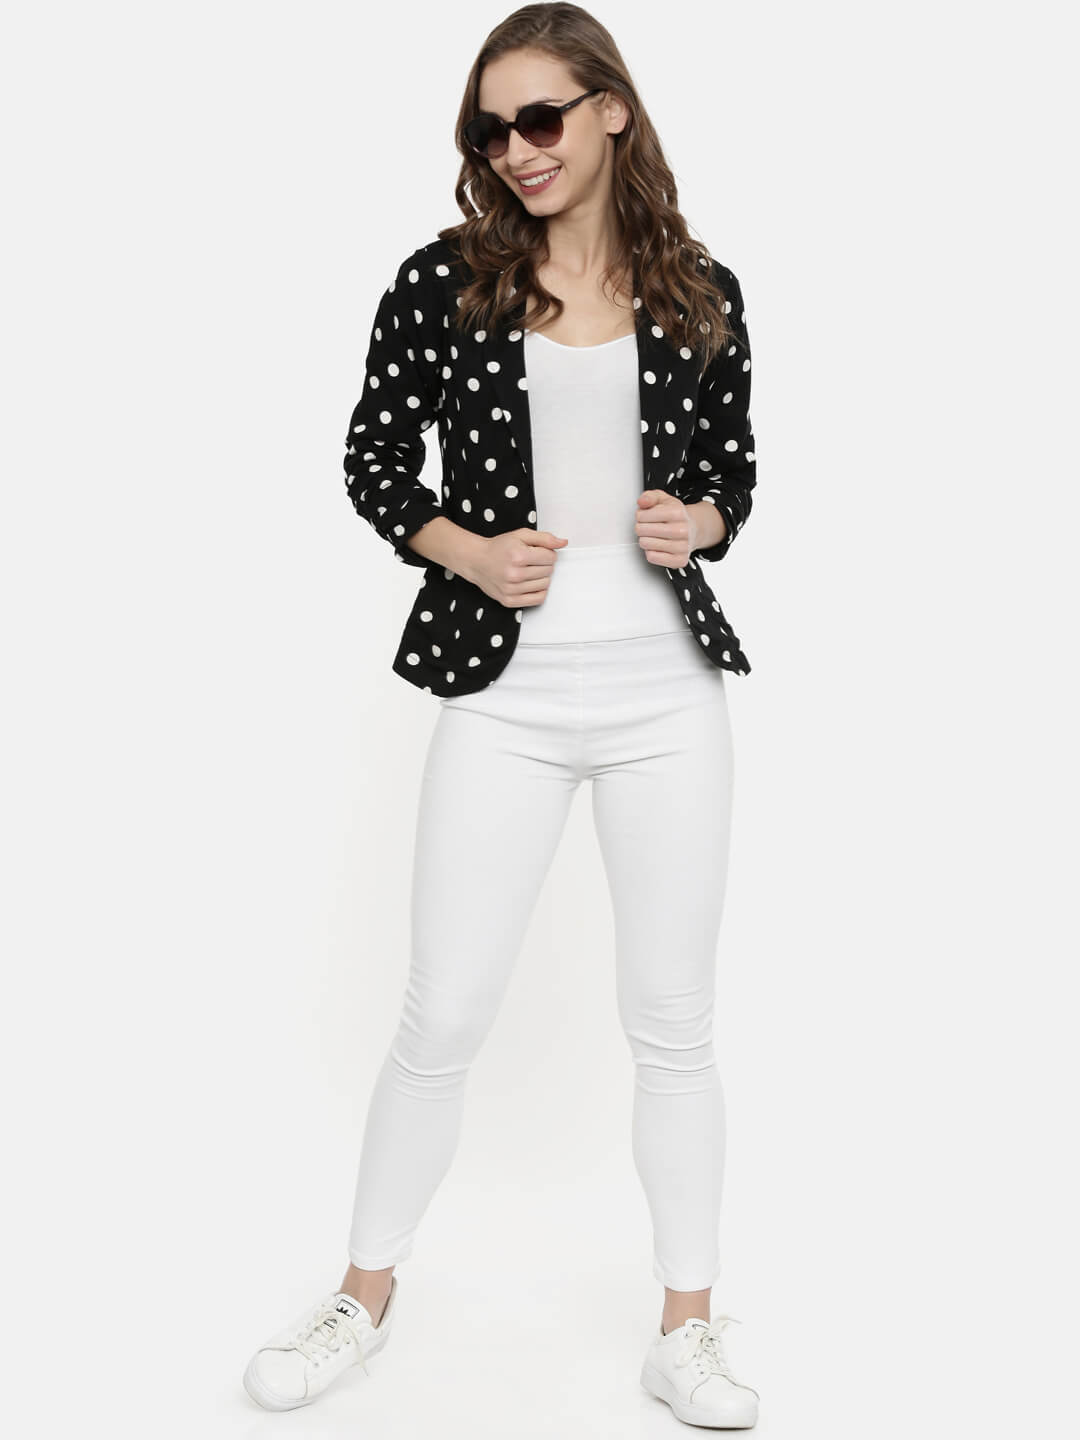 Black & White Polka Dots Jacket